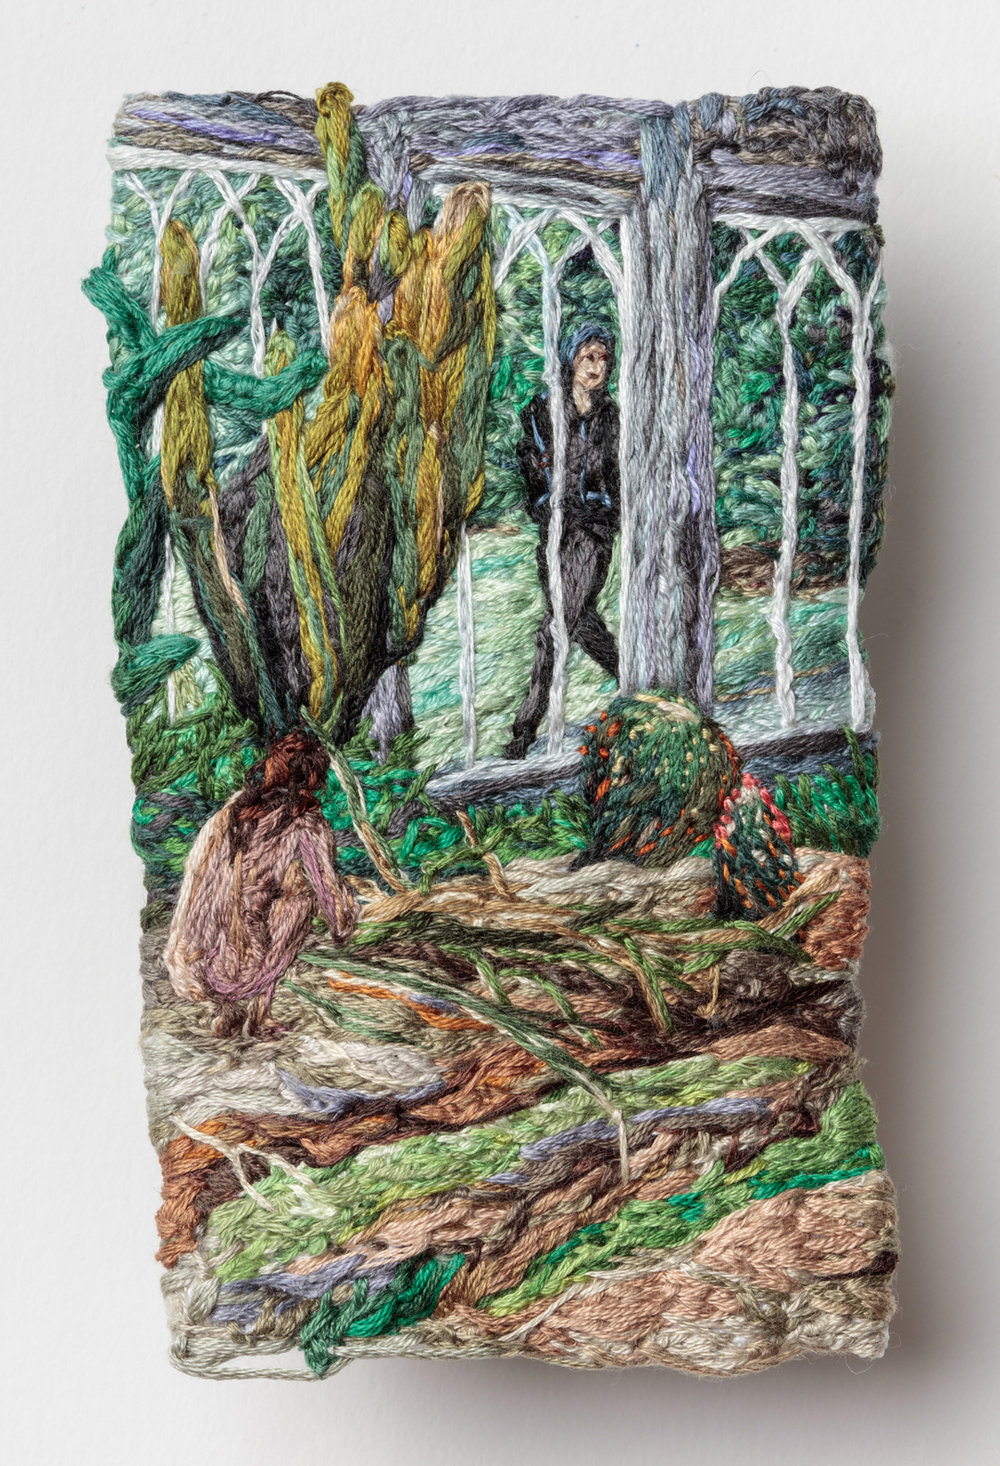 Hide and Seek , Sophia Narrett, 2016, Embroidery Thread and Fabric, 4.75 x 3.1 in_